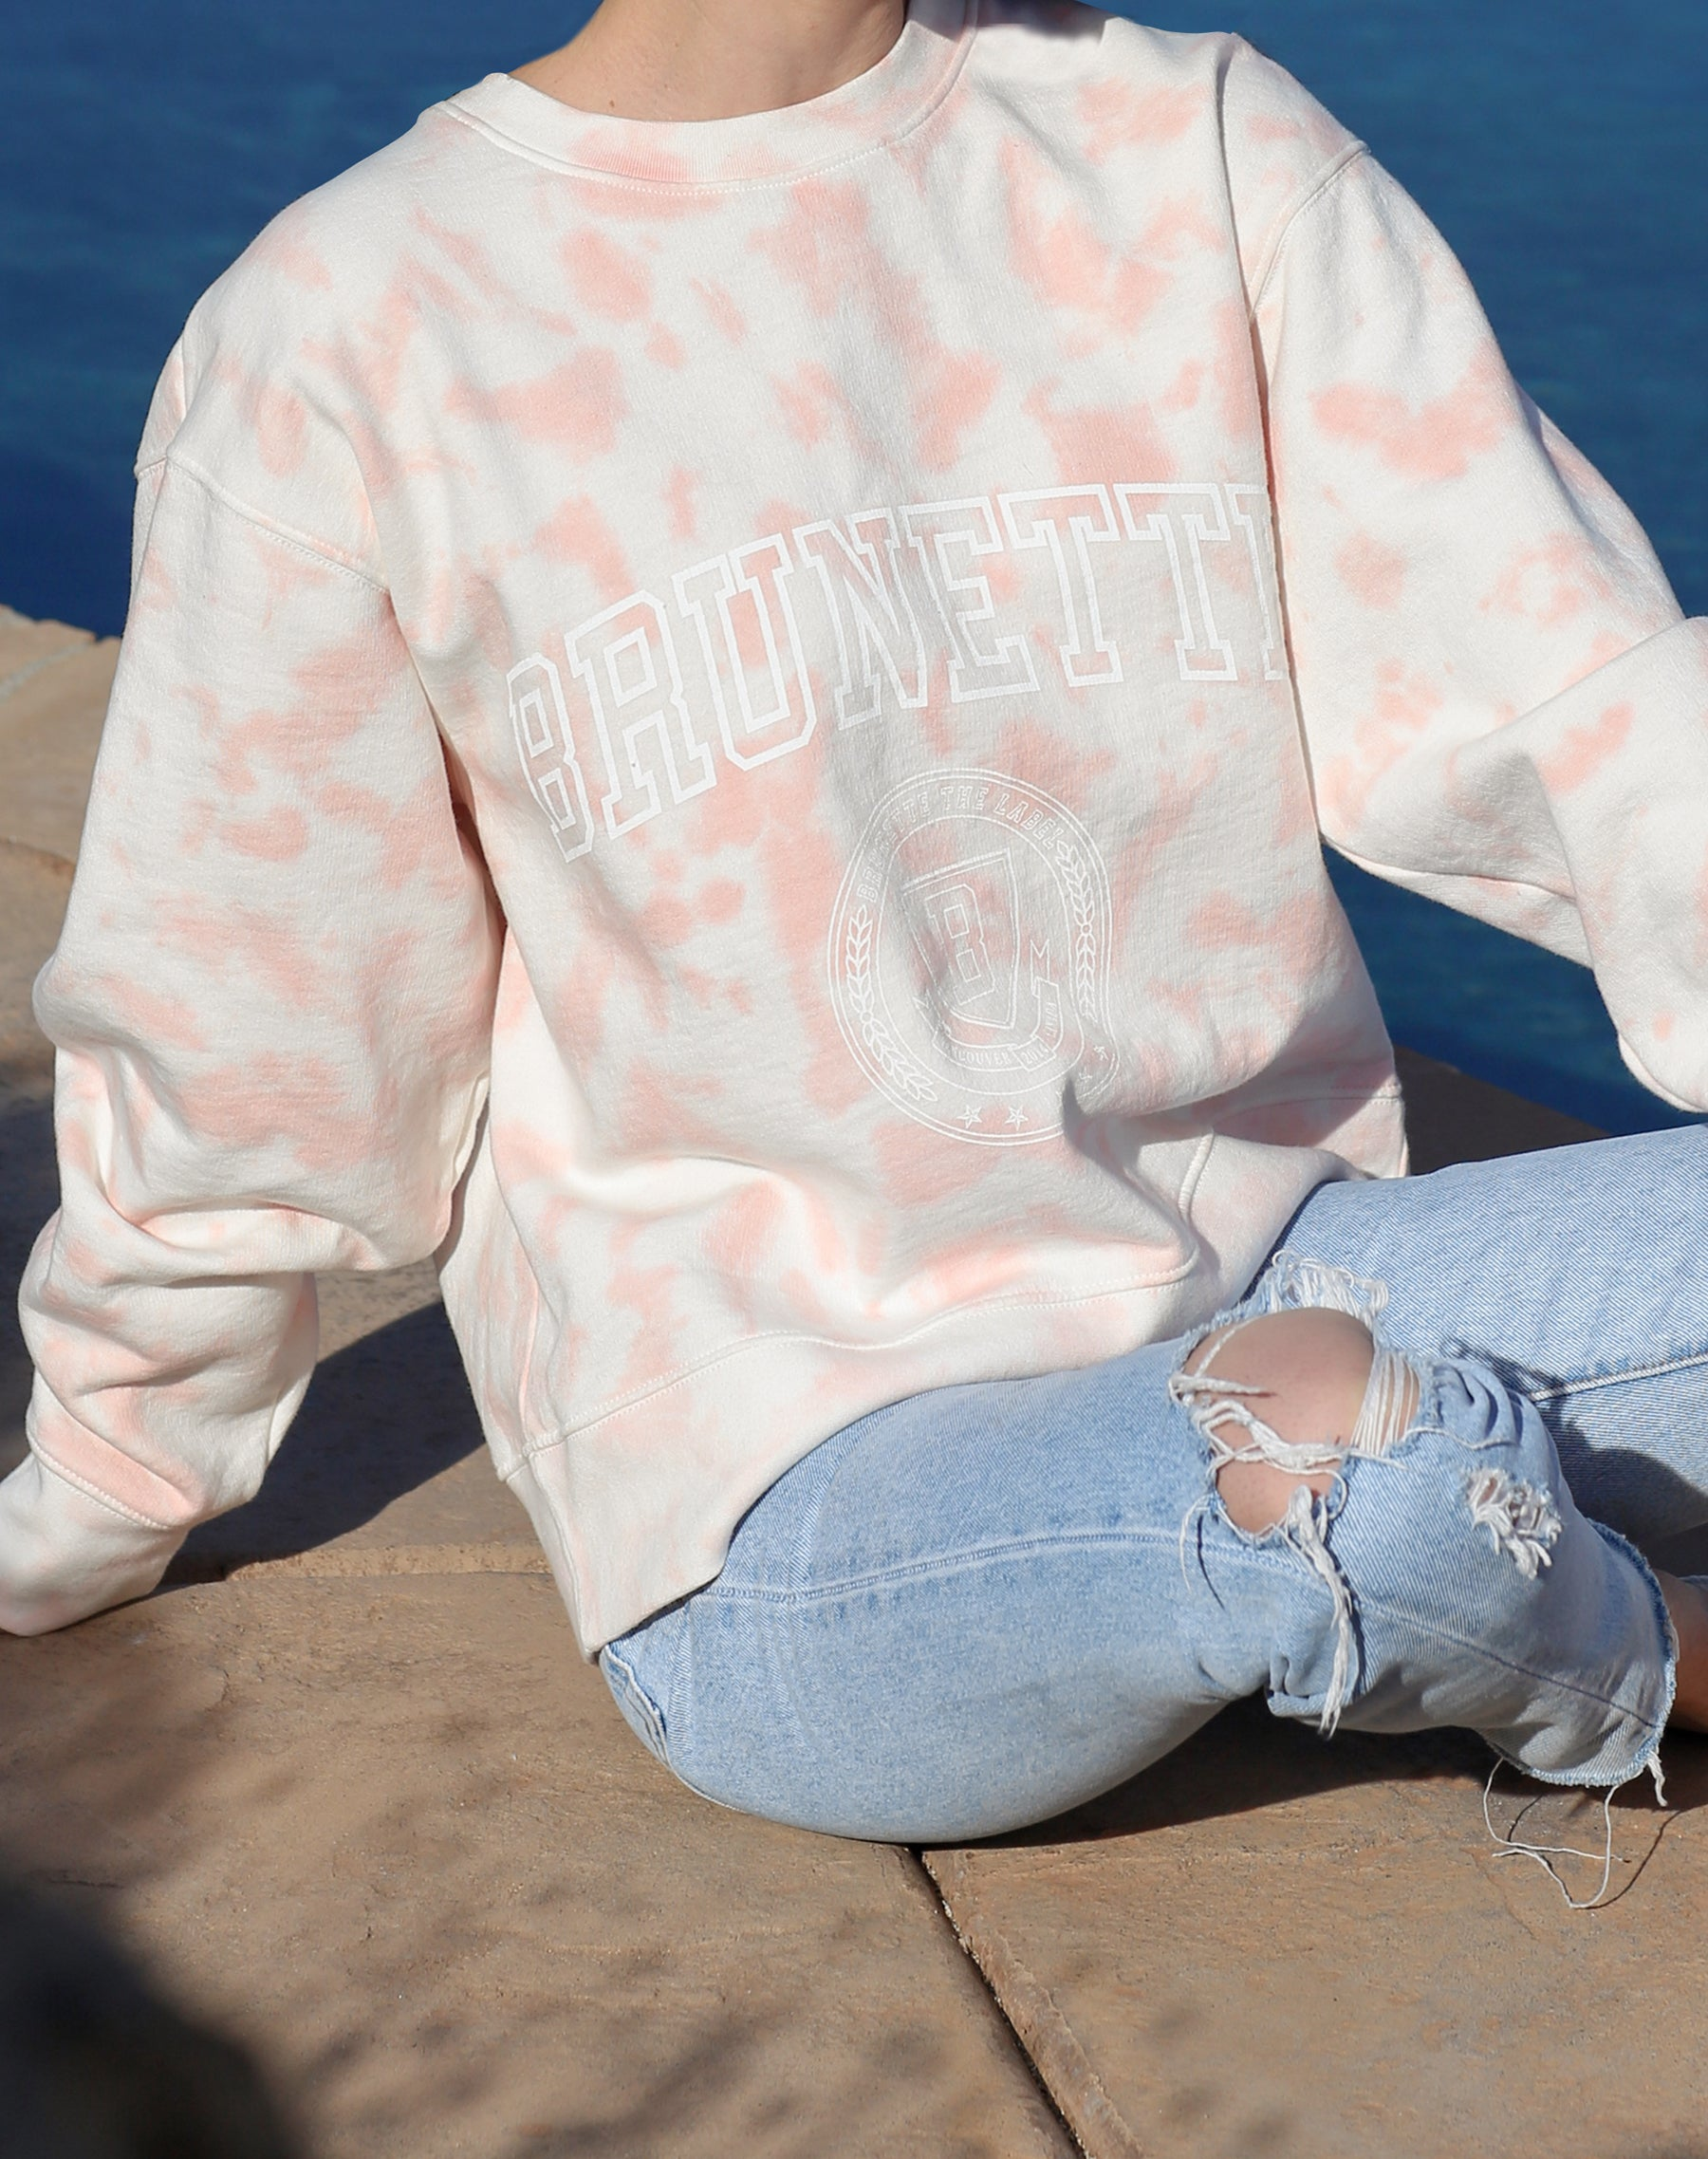 This is a campaign photo of the Brunette Step Sister Crew Neck Sweatshirt in Pink Marble Tie Dye